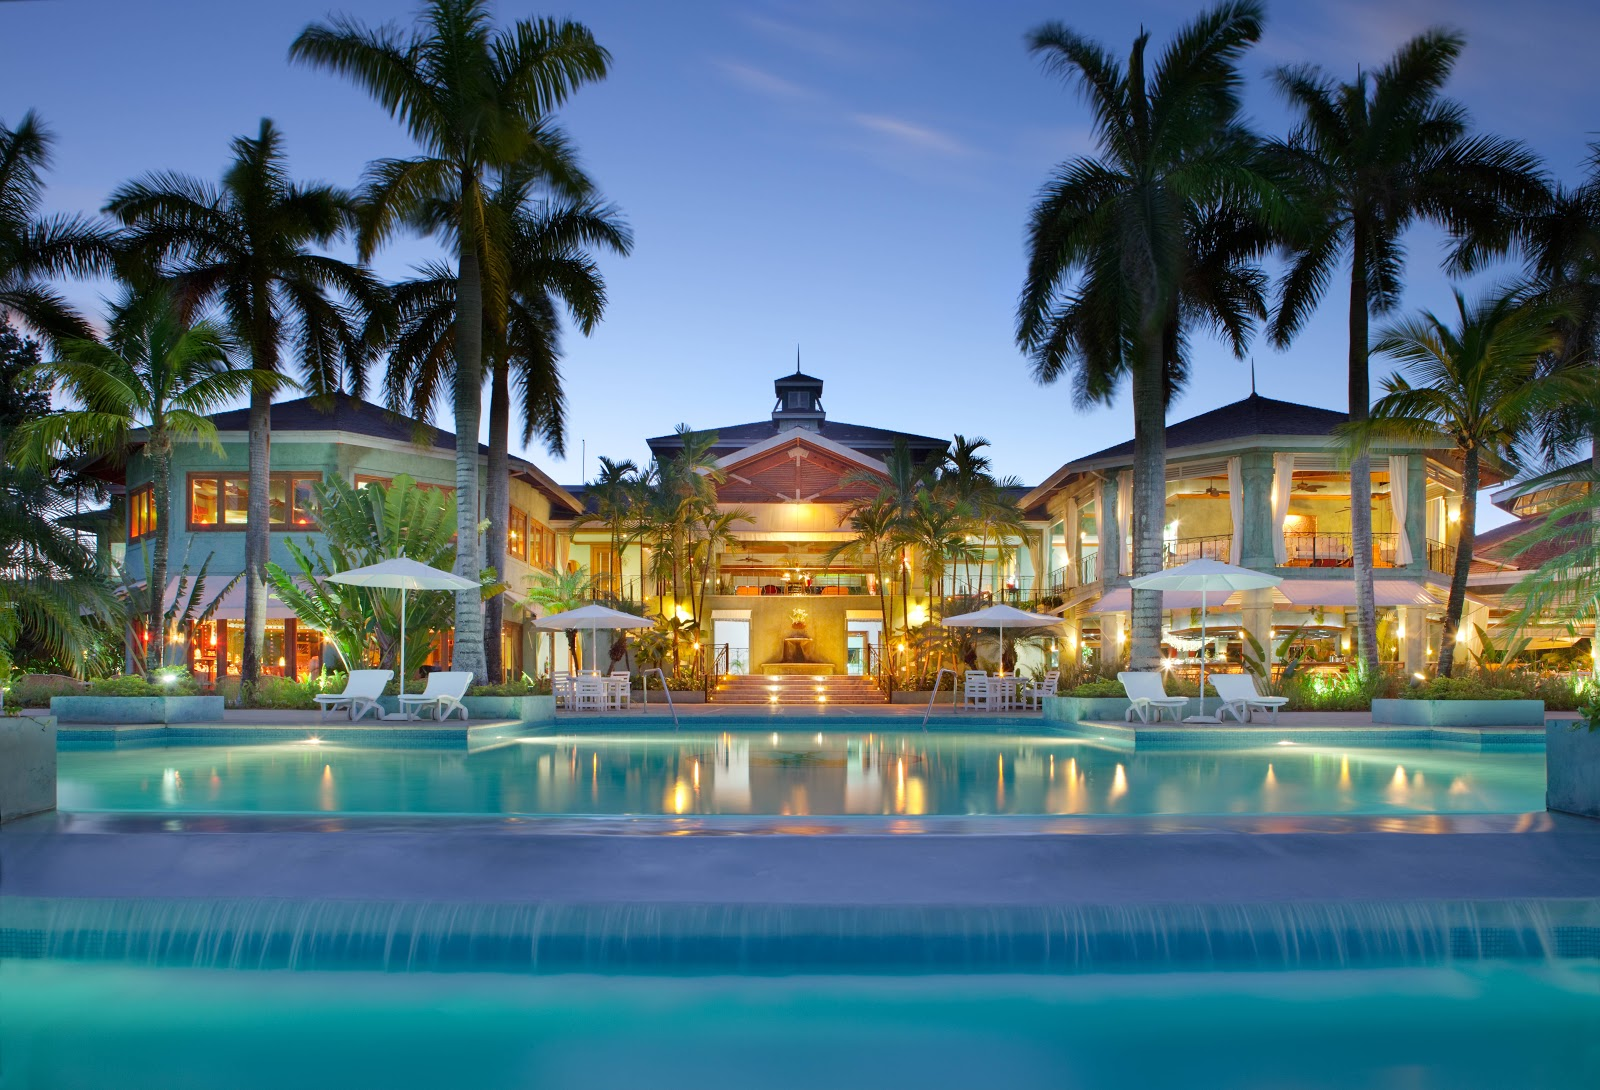 world visits top 5 best resorts in united states rh world visits blogspot com best resorts in usa for families best resorts in usa for couples